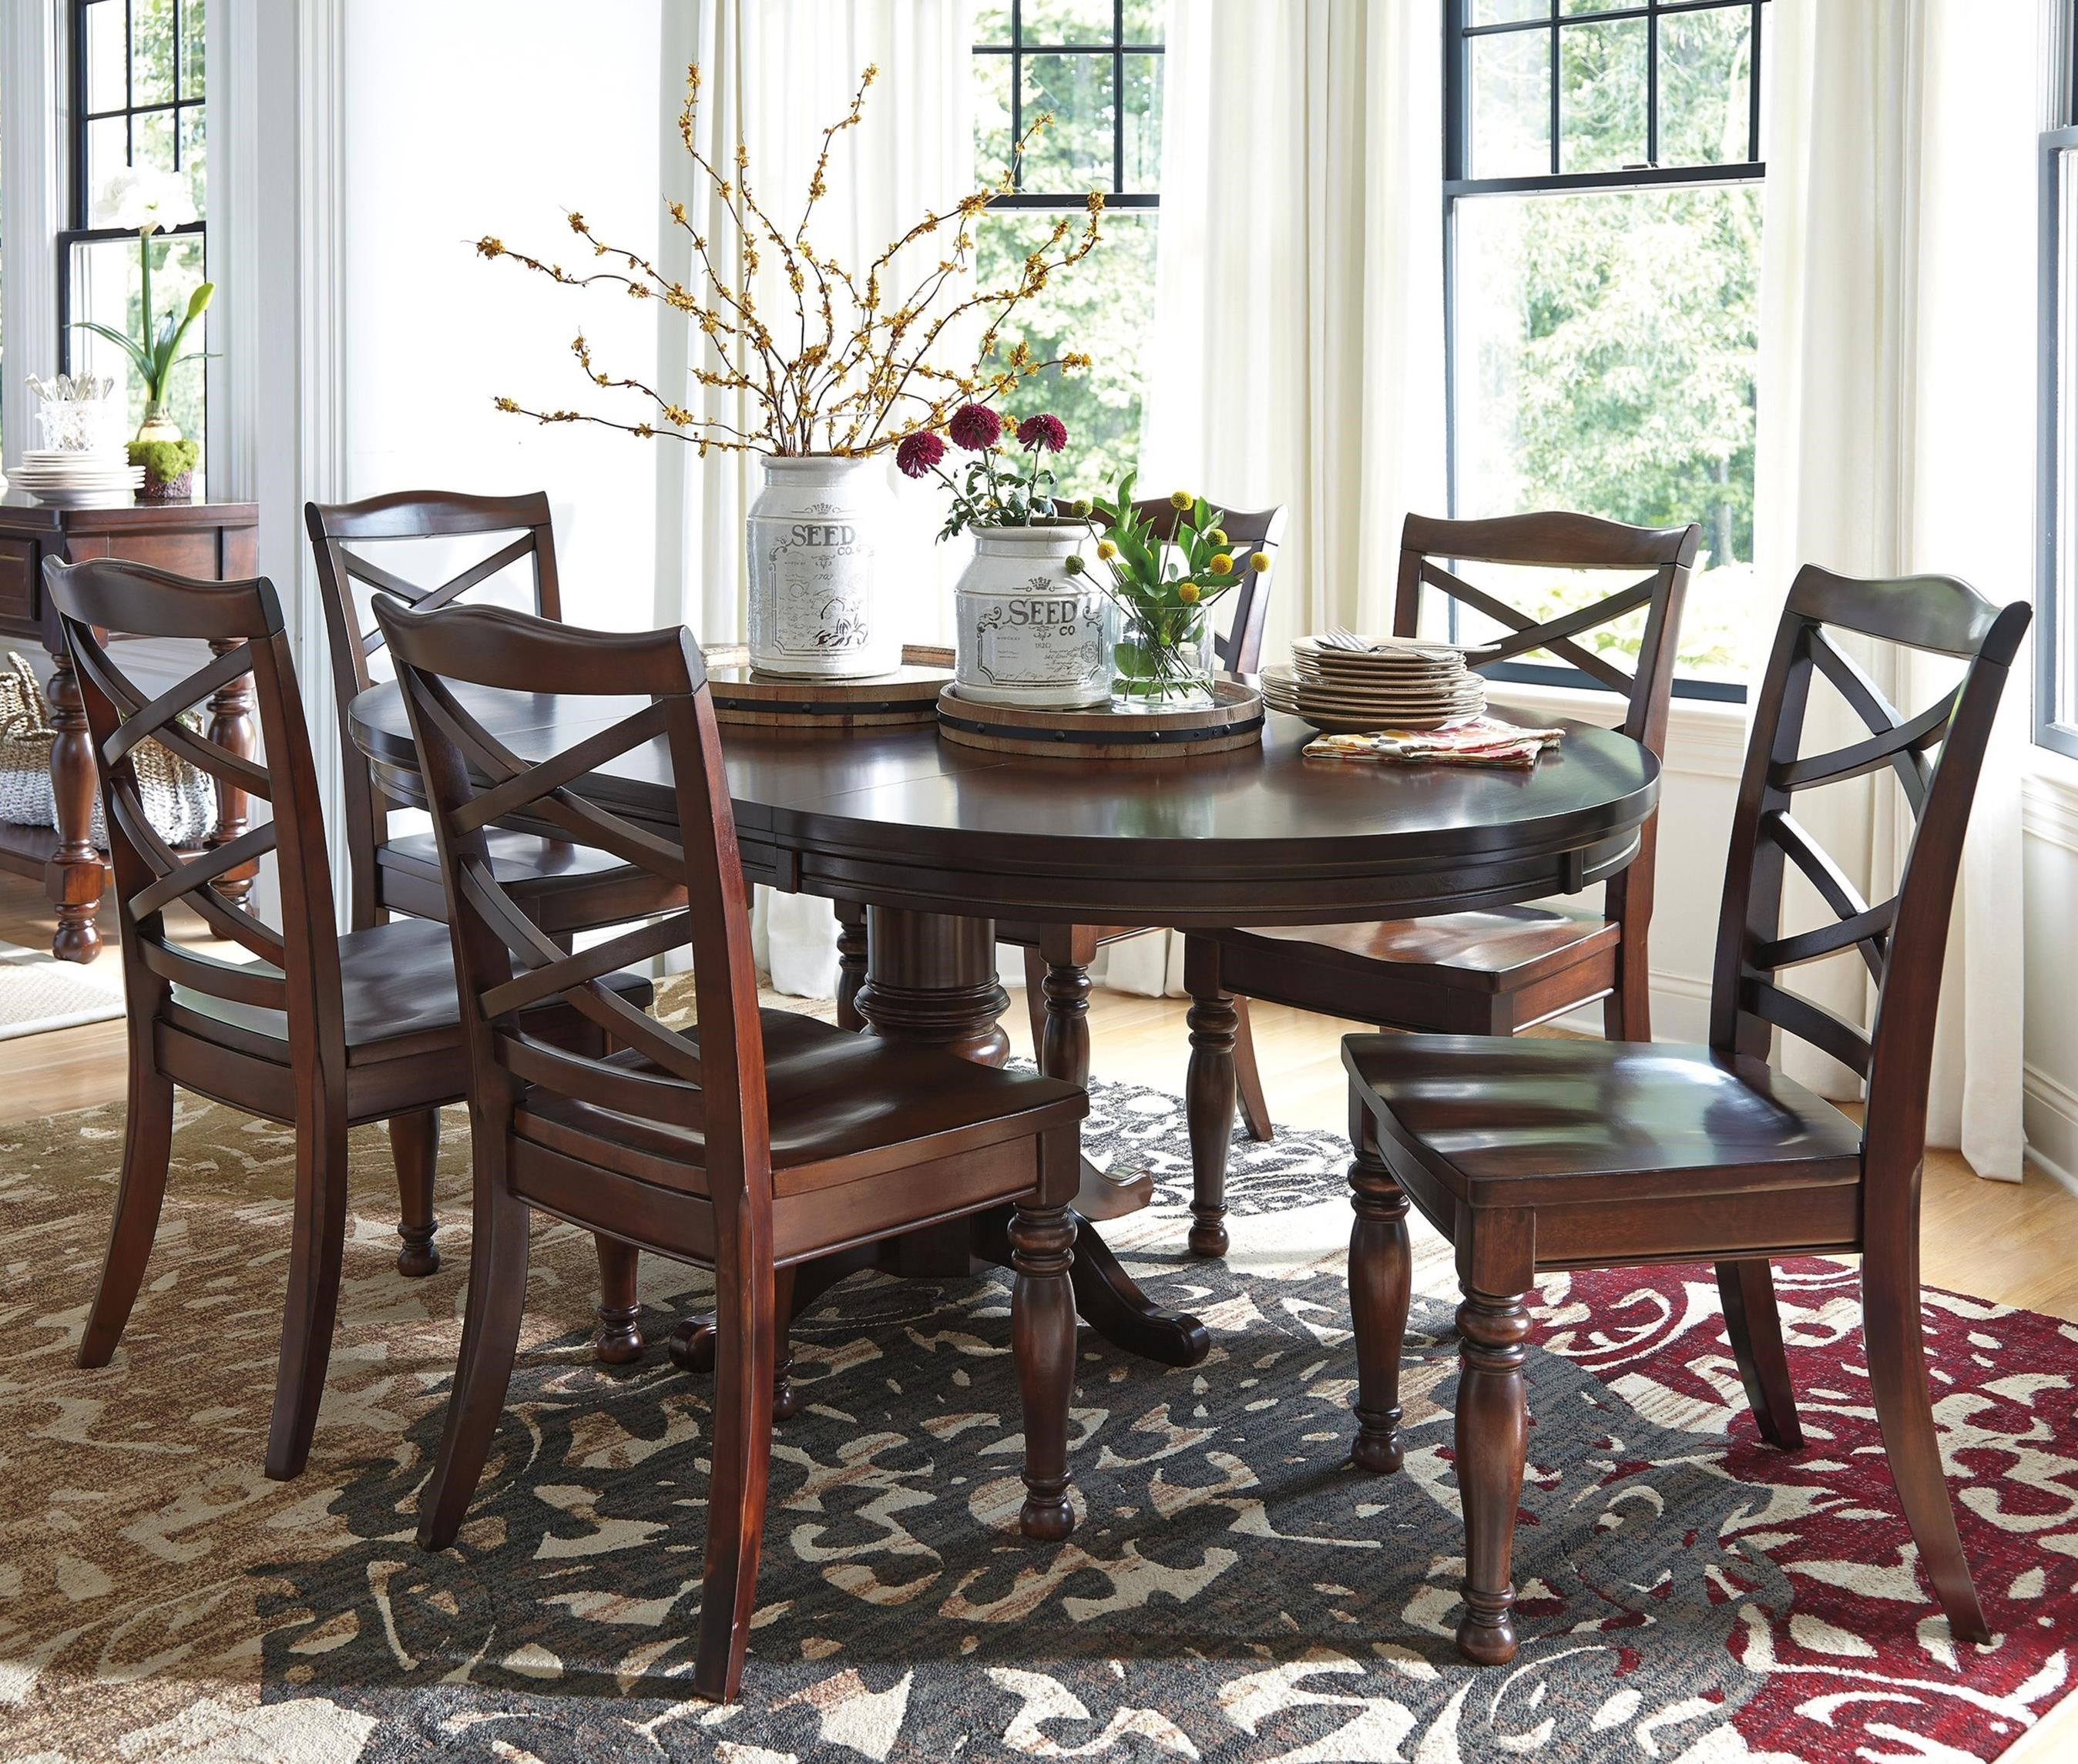 ashley furniture dining room table set   d321 225 ashley Clearence Dining Table Sets Ashley Furniture Dining Table Sets Walmart